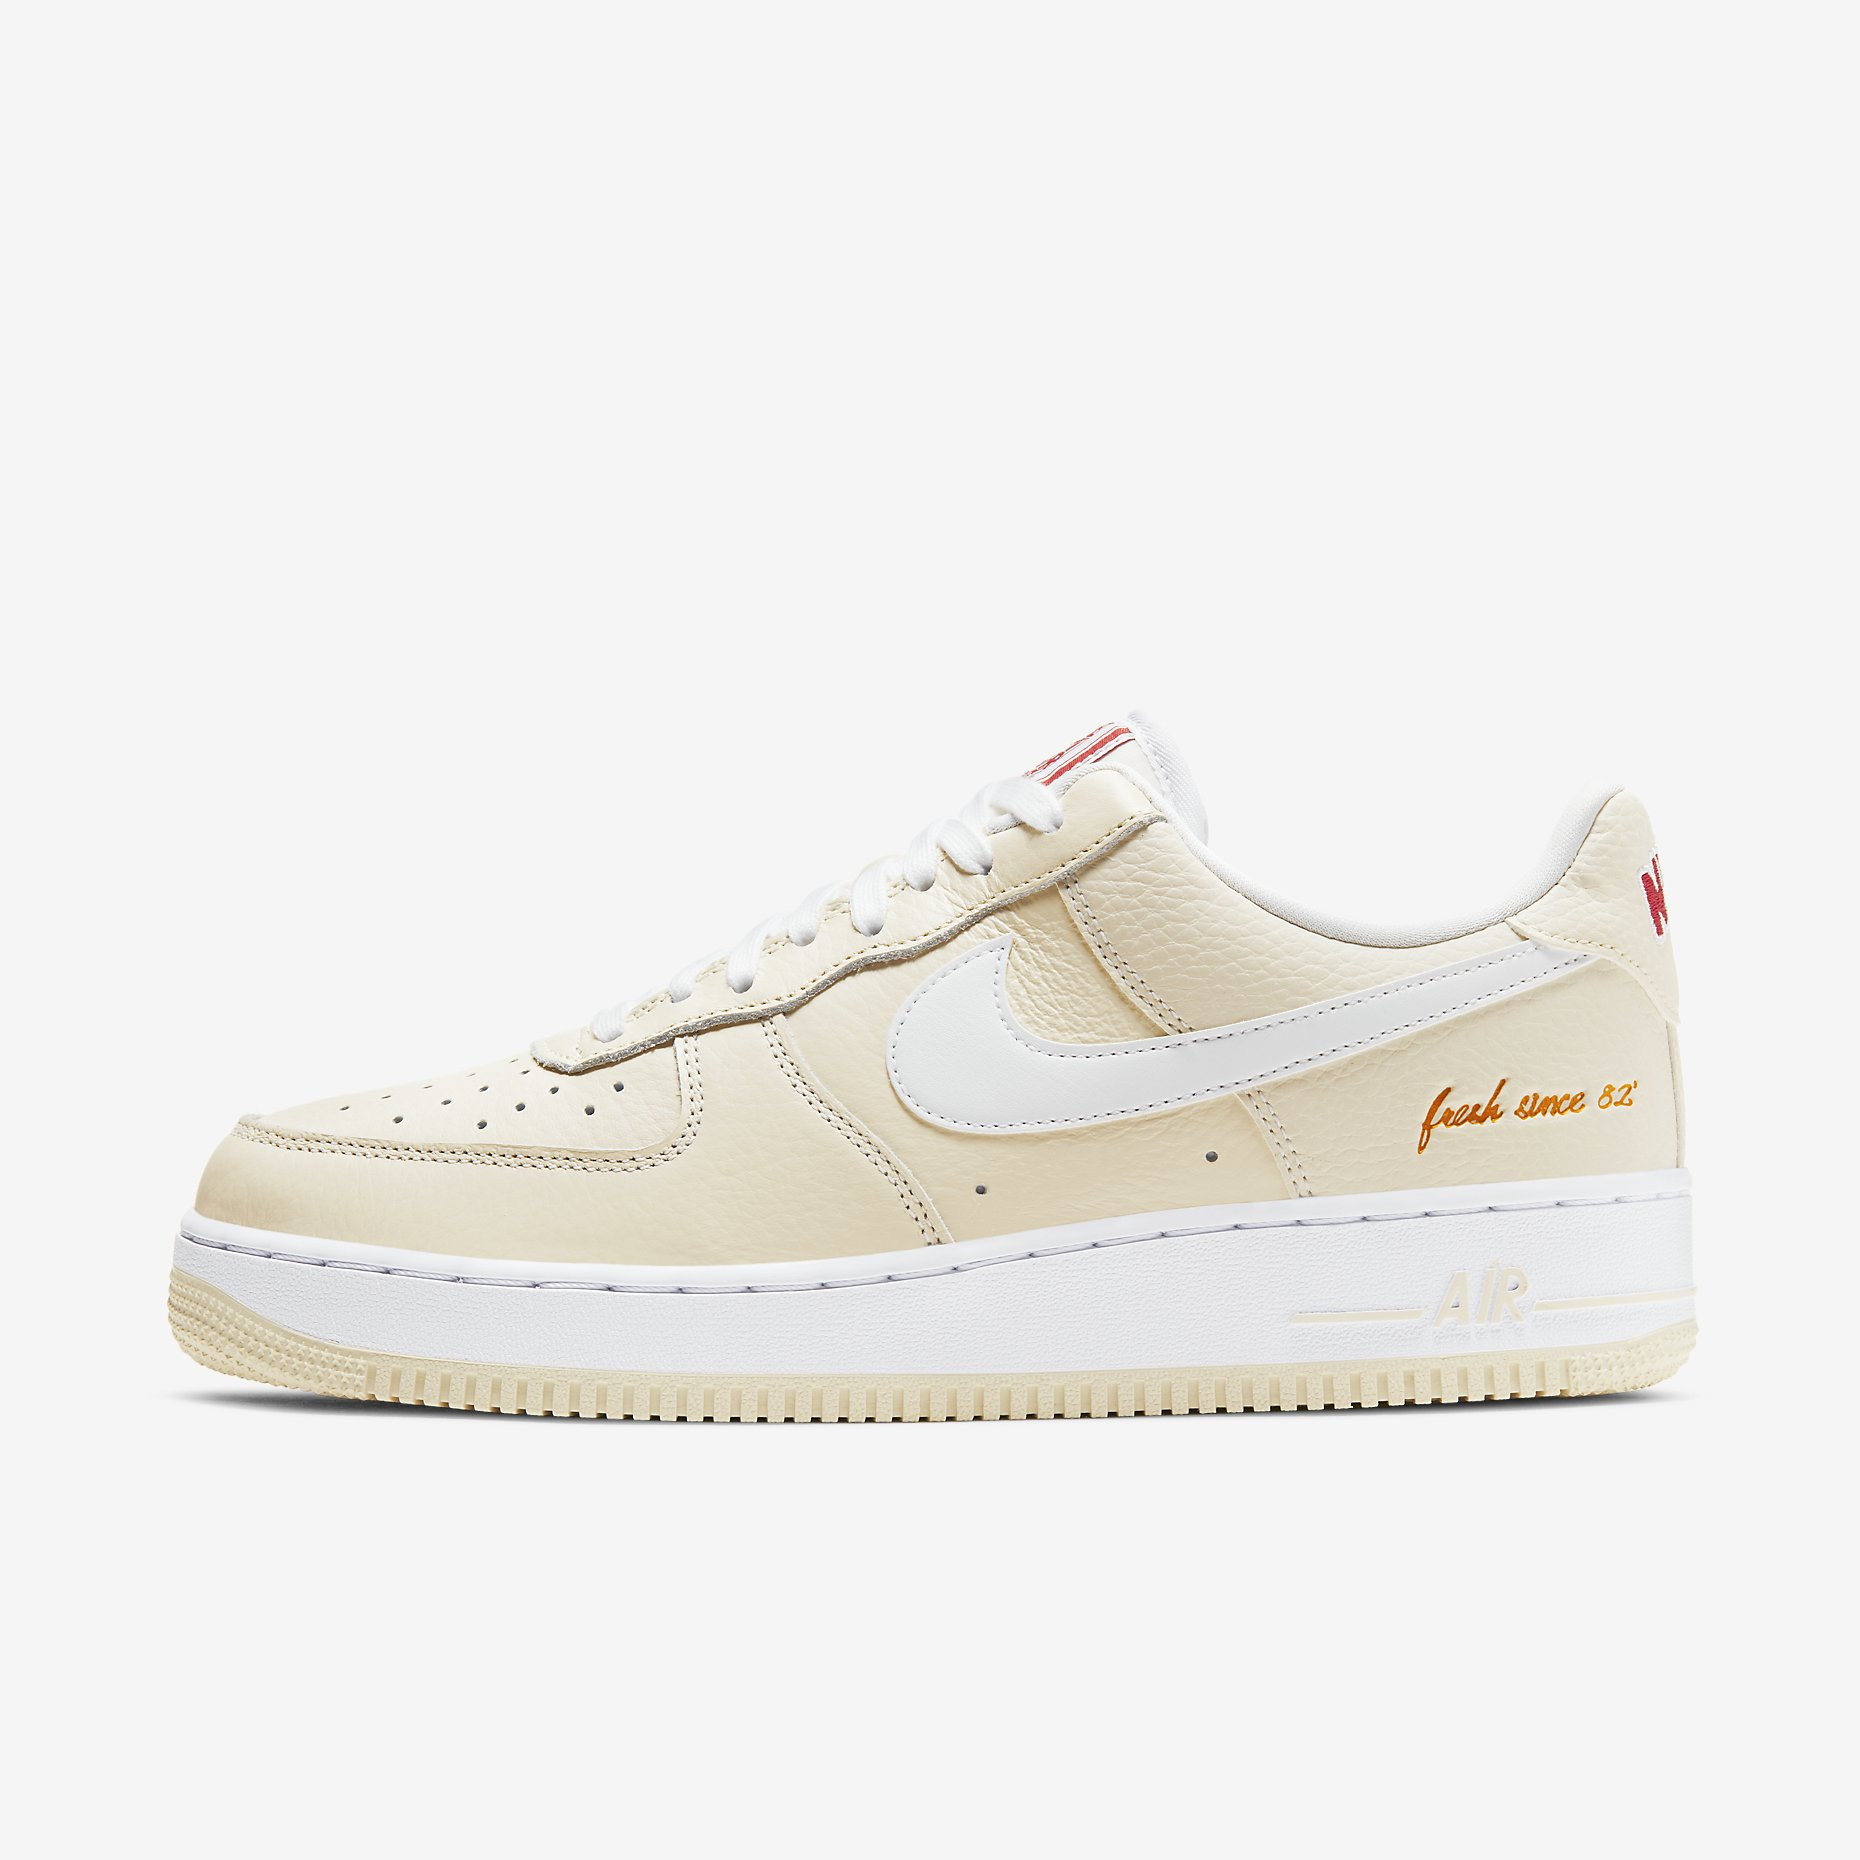 Nike Air Force 1 '07 Premium 'Popcorn'}